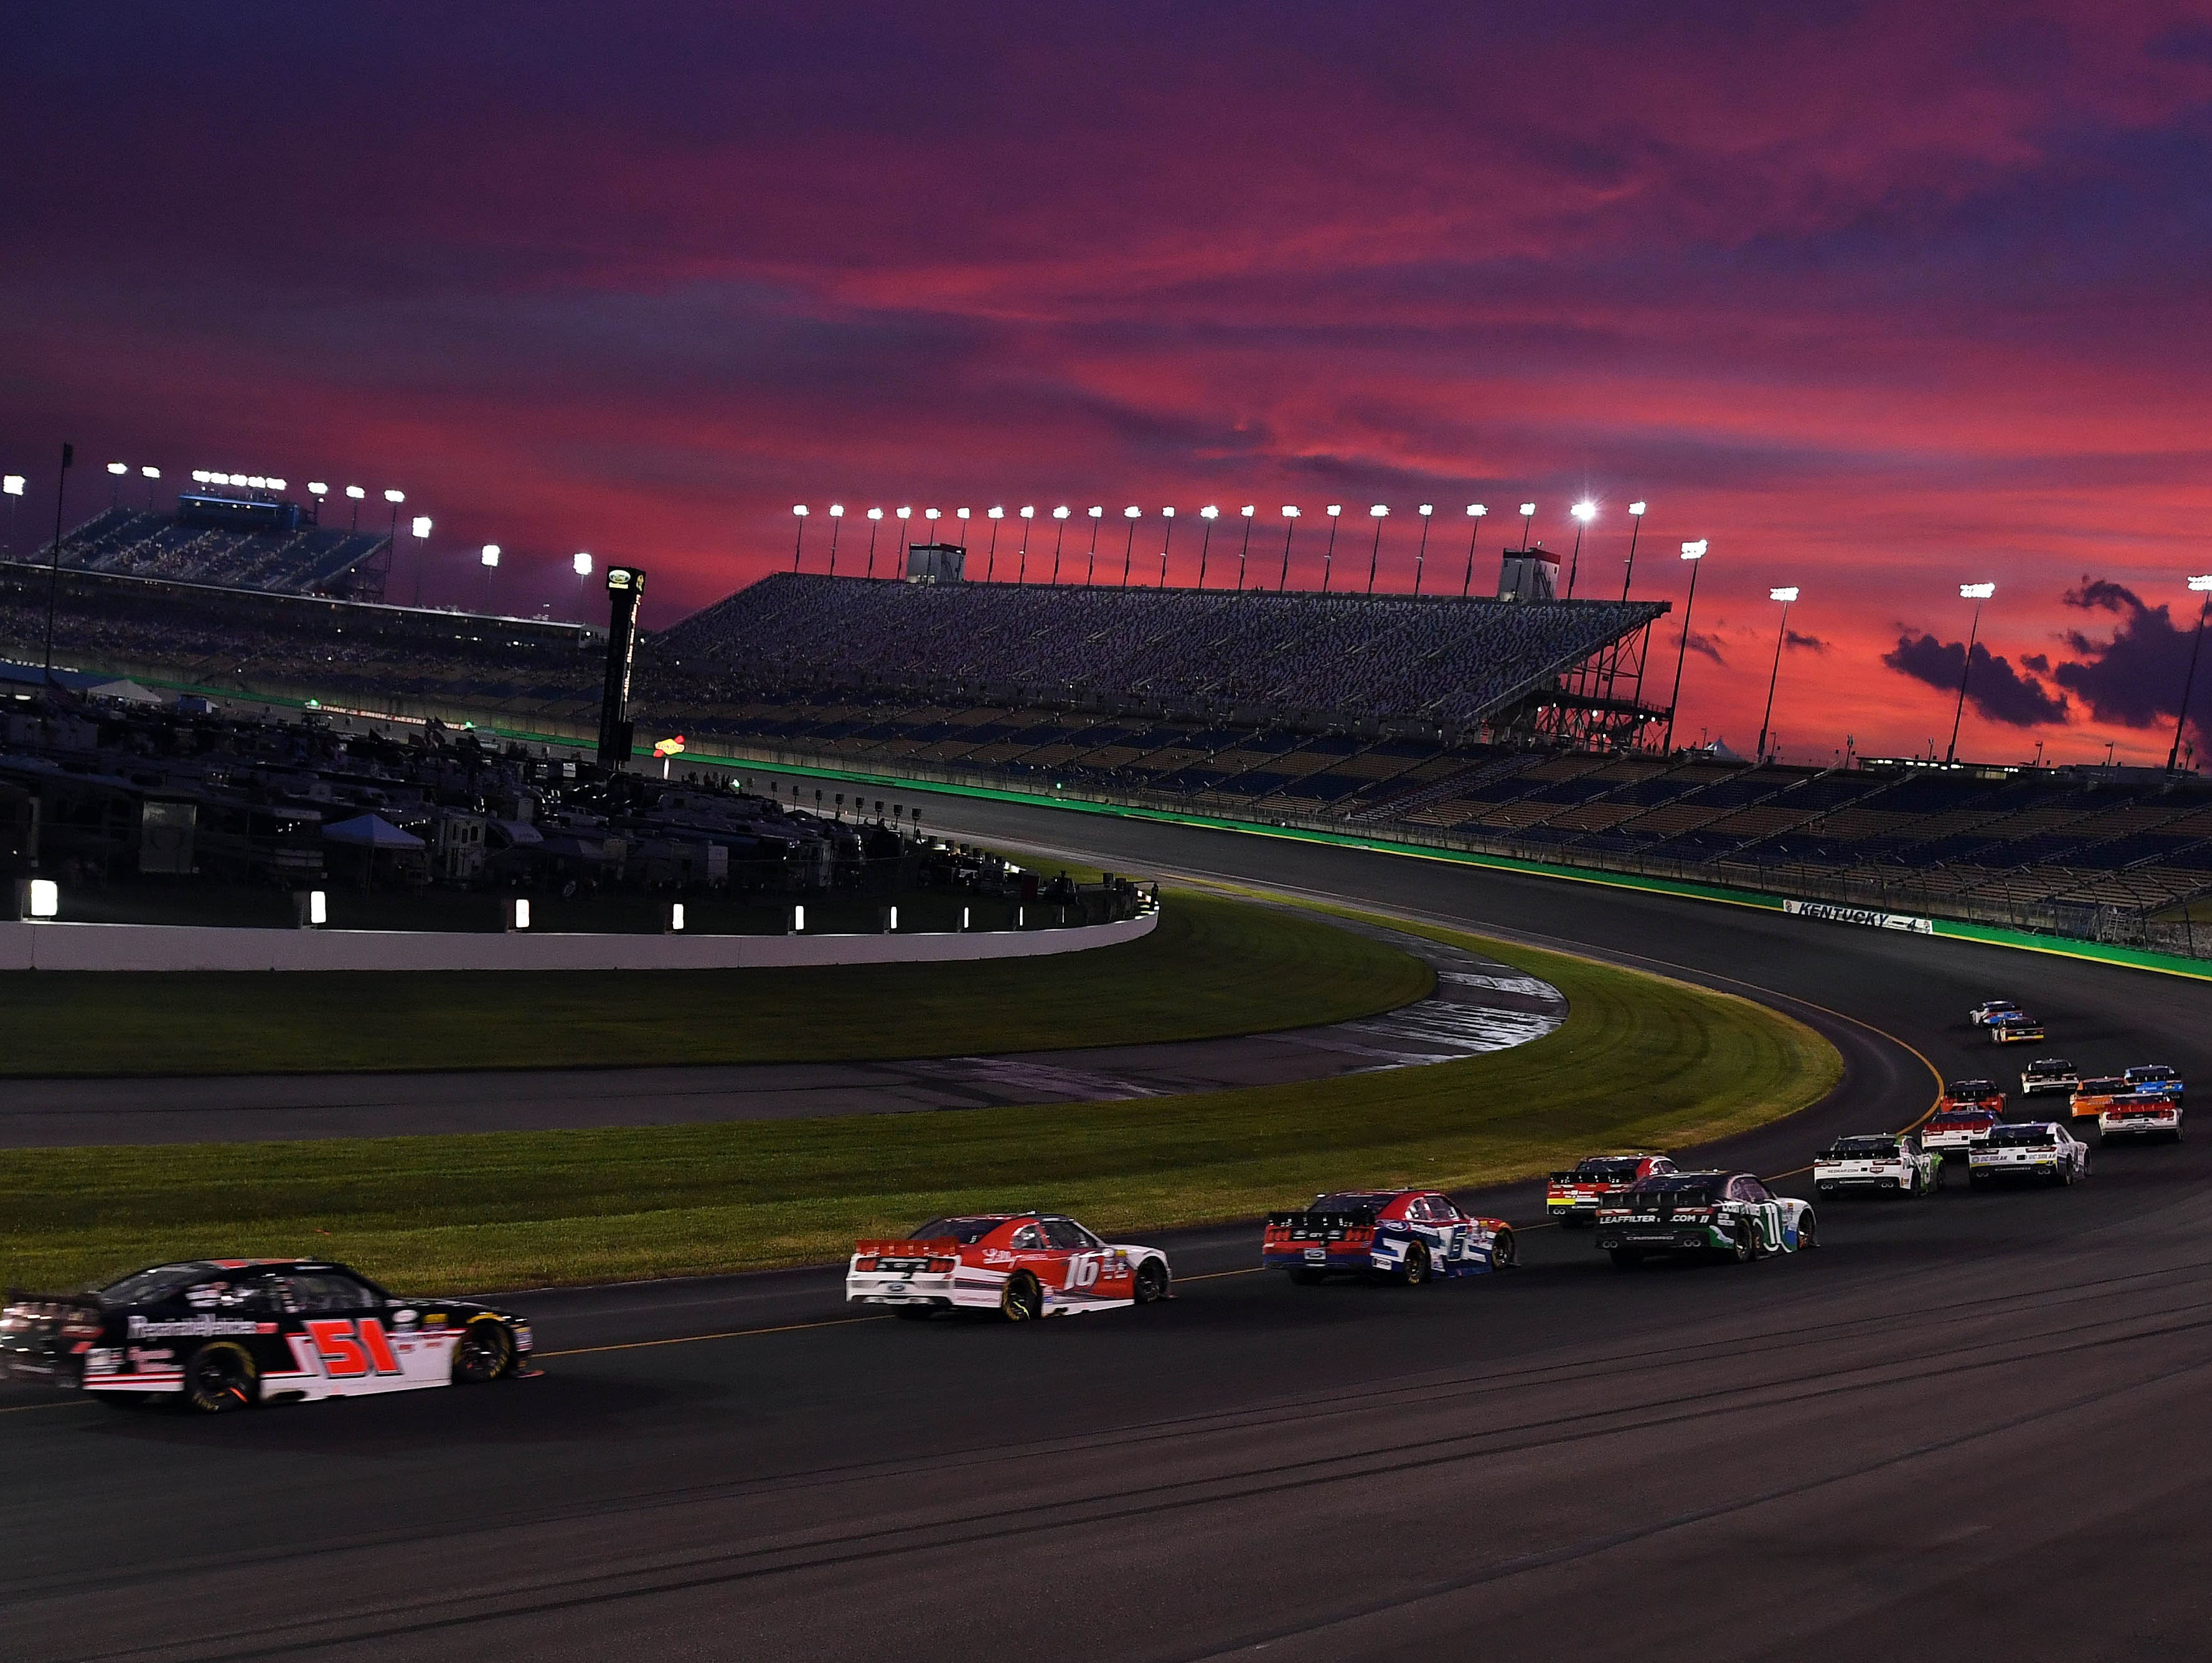 Spend an evening at the Kentucky Speedway and catch the thrill of stock car racing. Enter 6/13-6/25.